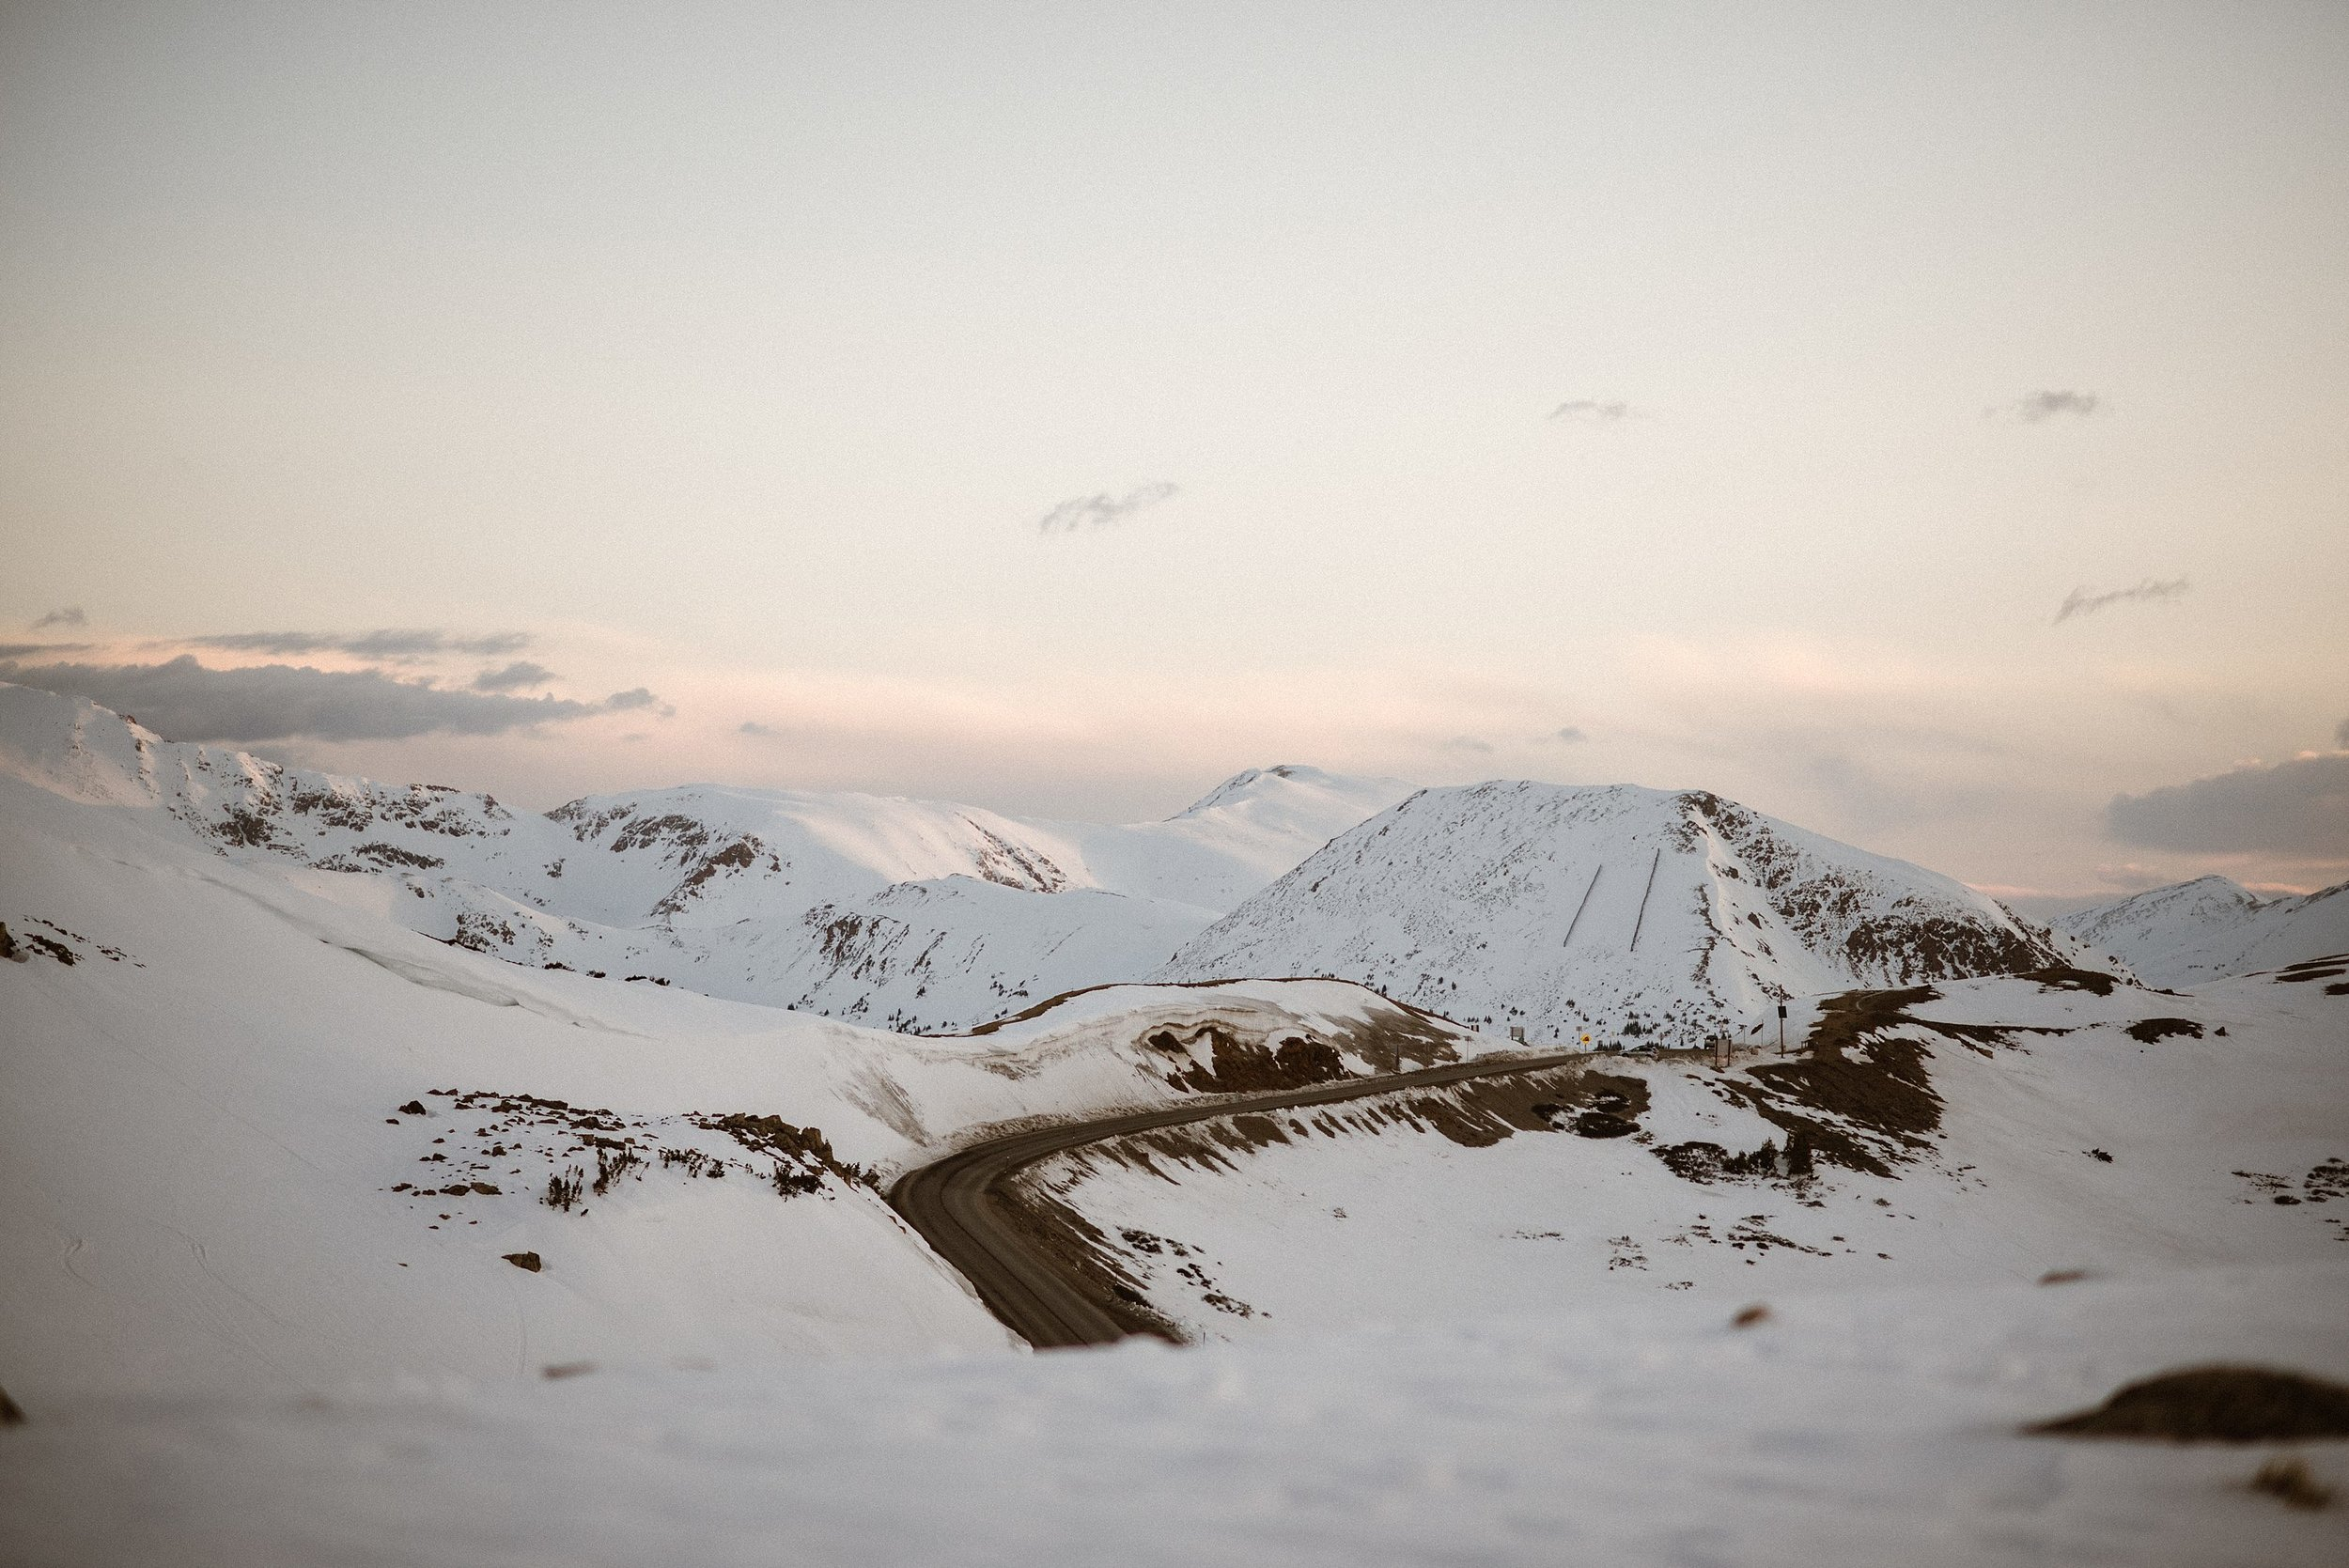 Starting the morning up Loveland Pass with the sun just starting to rise over the mountains, the pink alpine glow setting the stage for this intimate snowy elopement. Photos by intimate wedding photographer Maddie Mae.